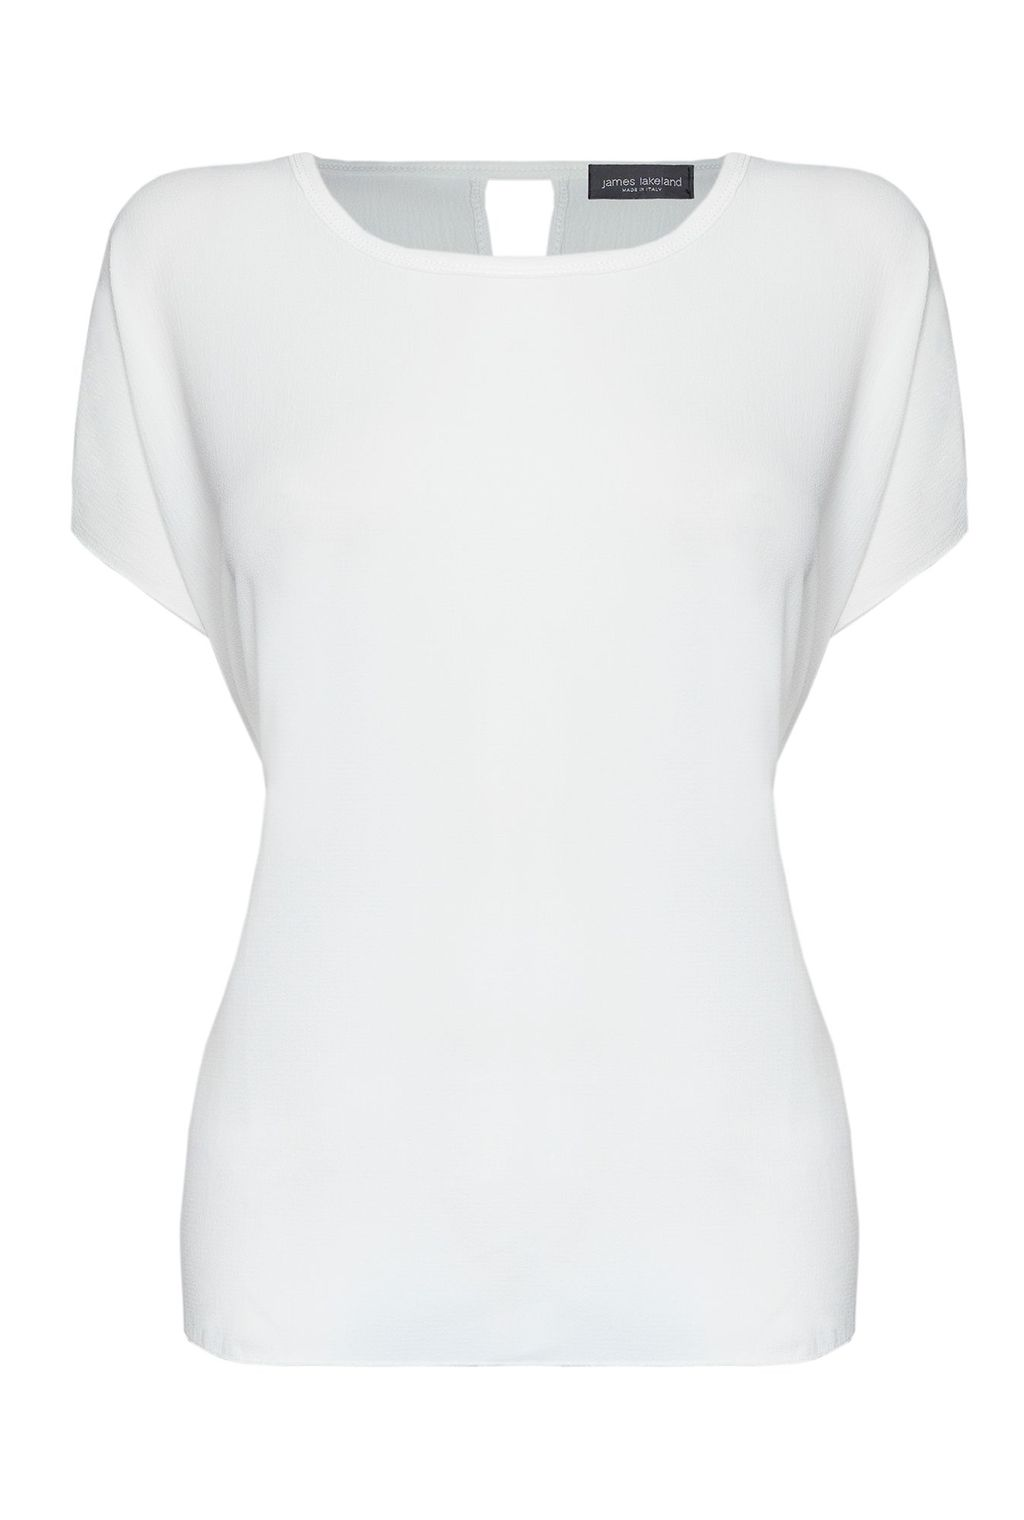 Crepe Top With Split Back, Cream - pattern: plain; predominant colour: ivory/cream; occasions: casual; length: standard; style: top; fibres: polyester/polyamide - stretch; fit: body skimming; neckline: crew; sleeve length: short sleeve; sleeve style: standard; pattern type: fabric; texture group: jersey - stretchy/drapey; season: s/s 2016